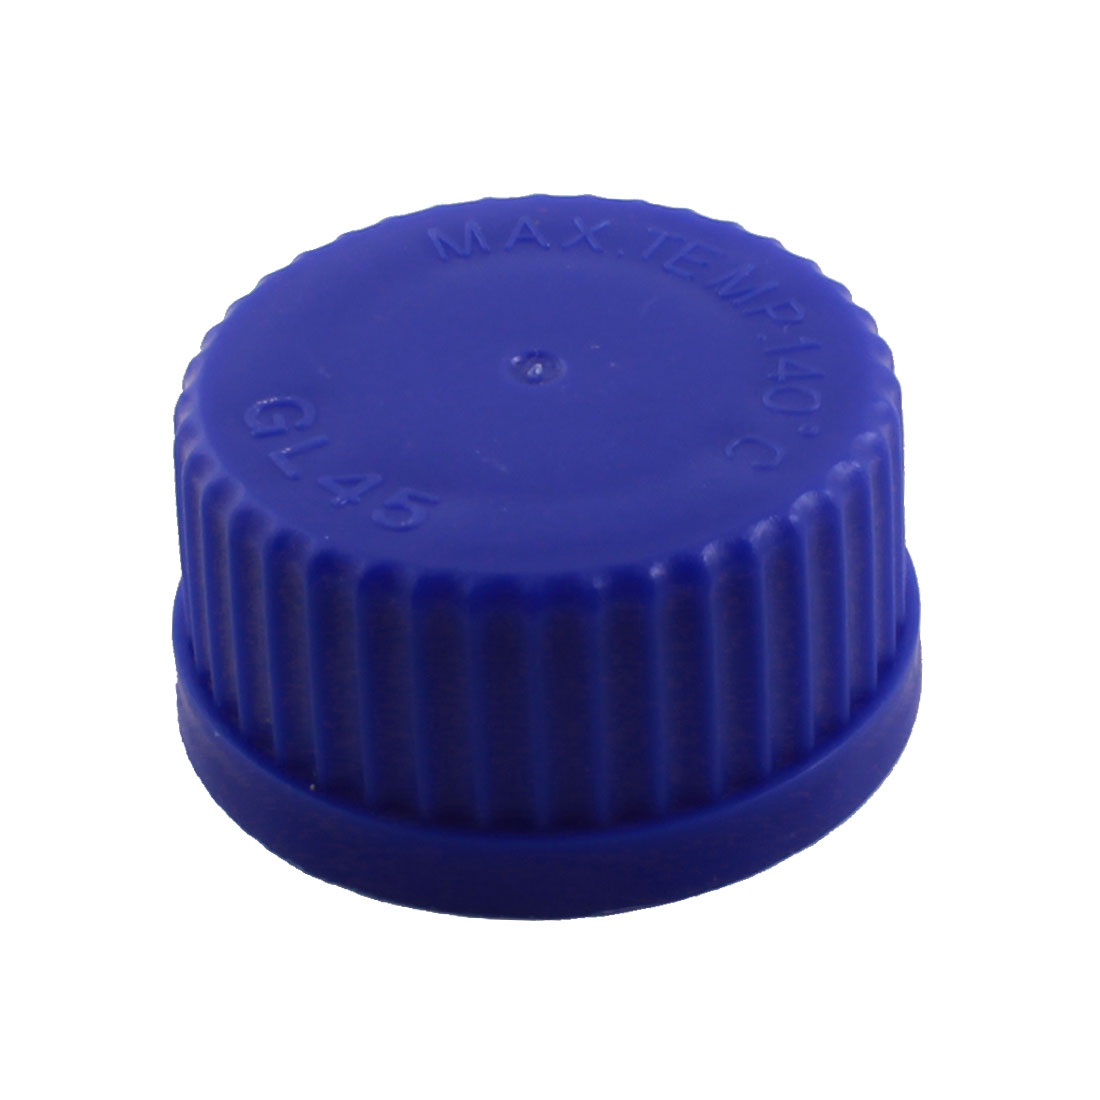 45mm Thread Dia Laboratory Blue Screw Lid Reagent Bottle Container Cap